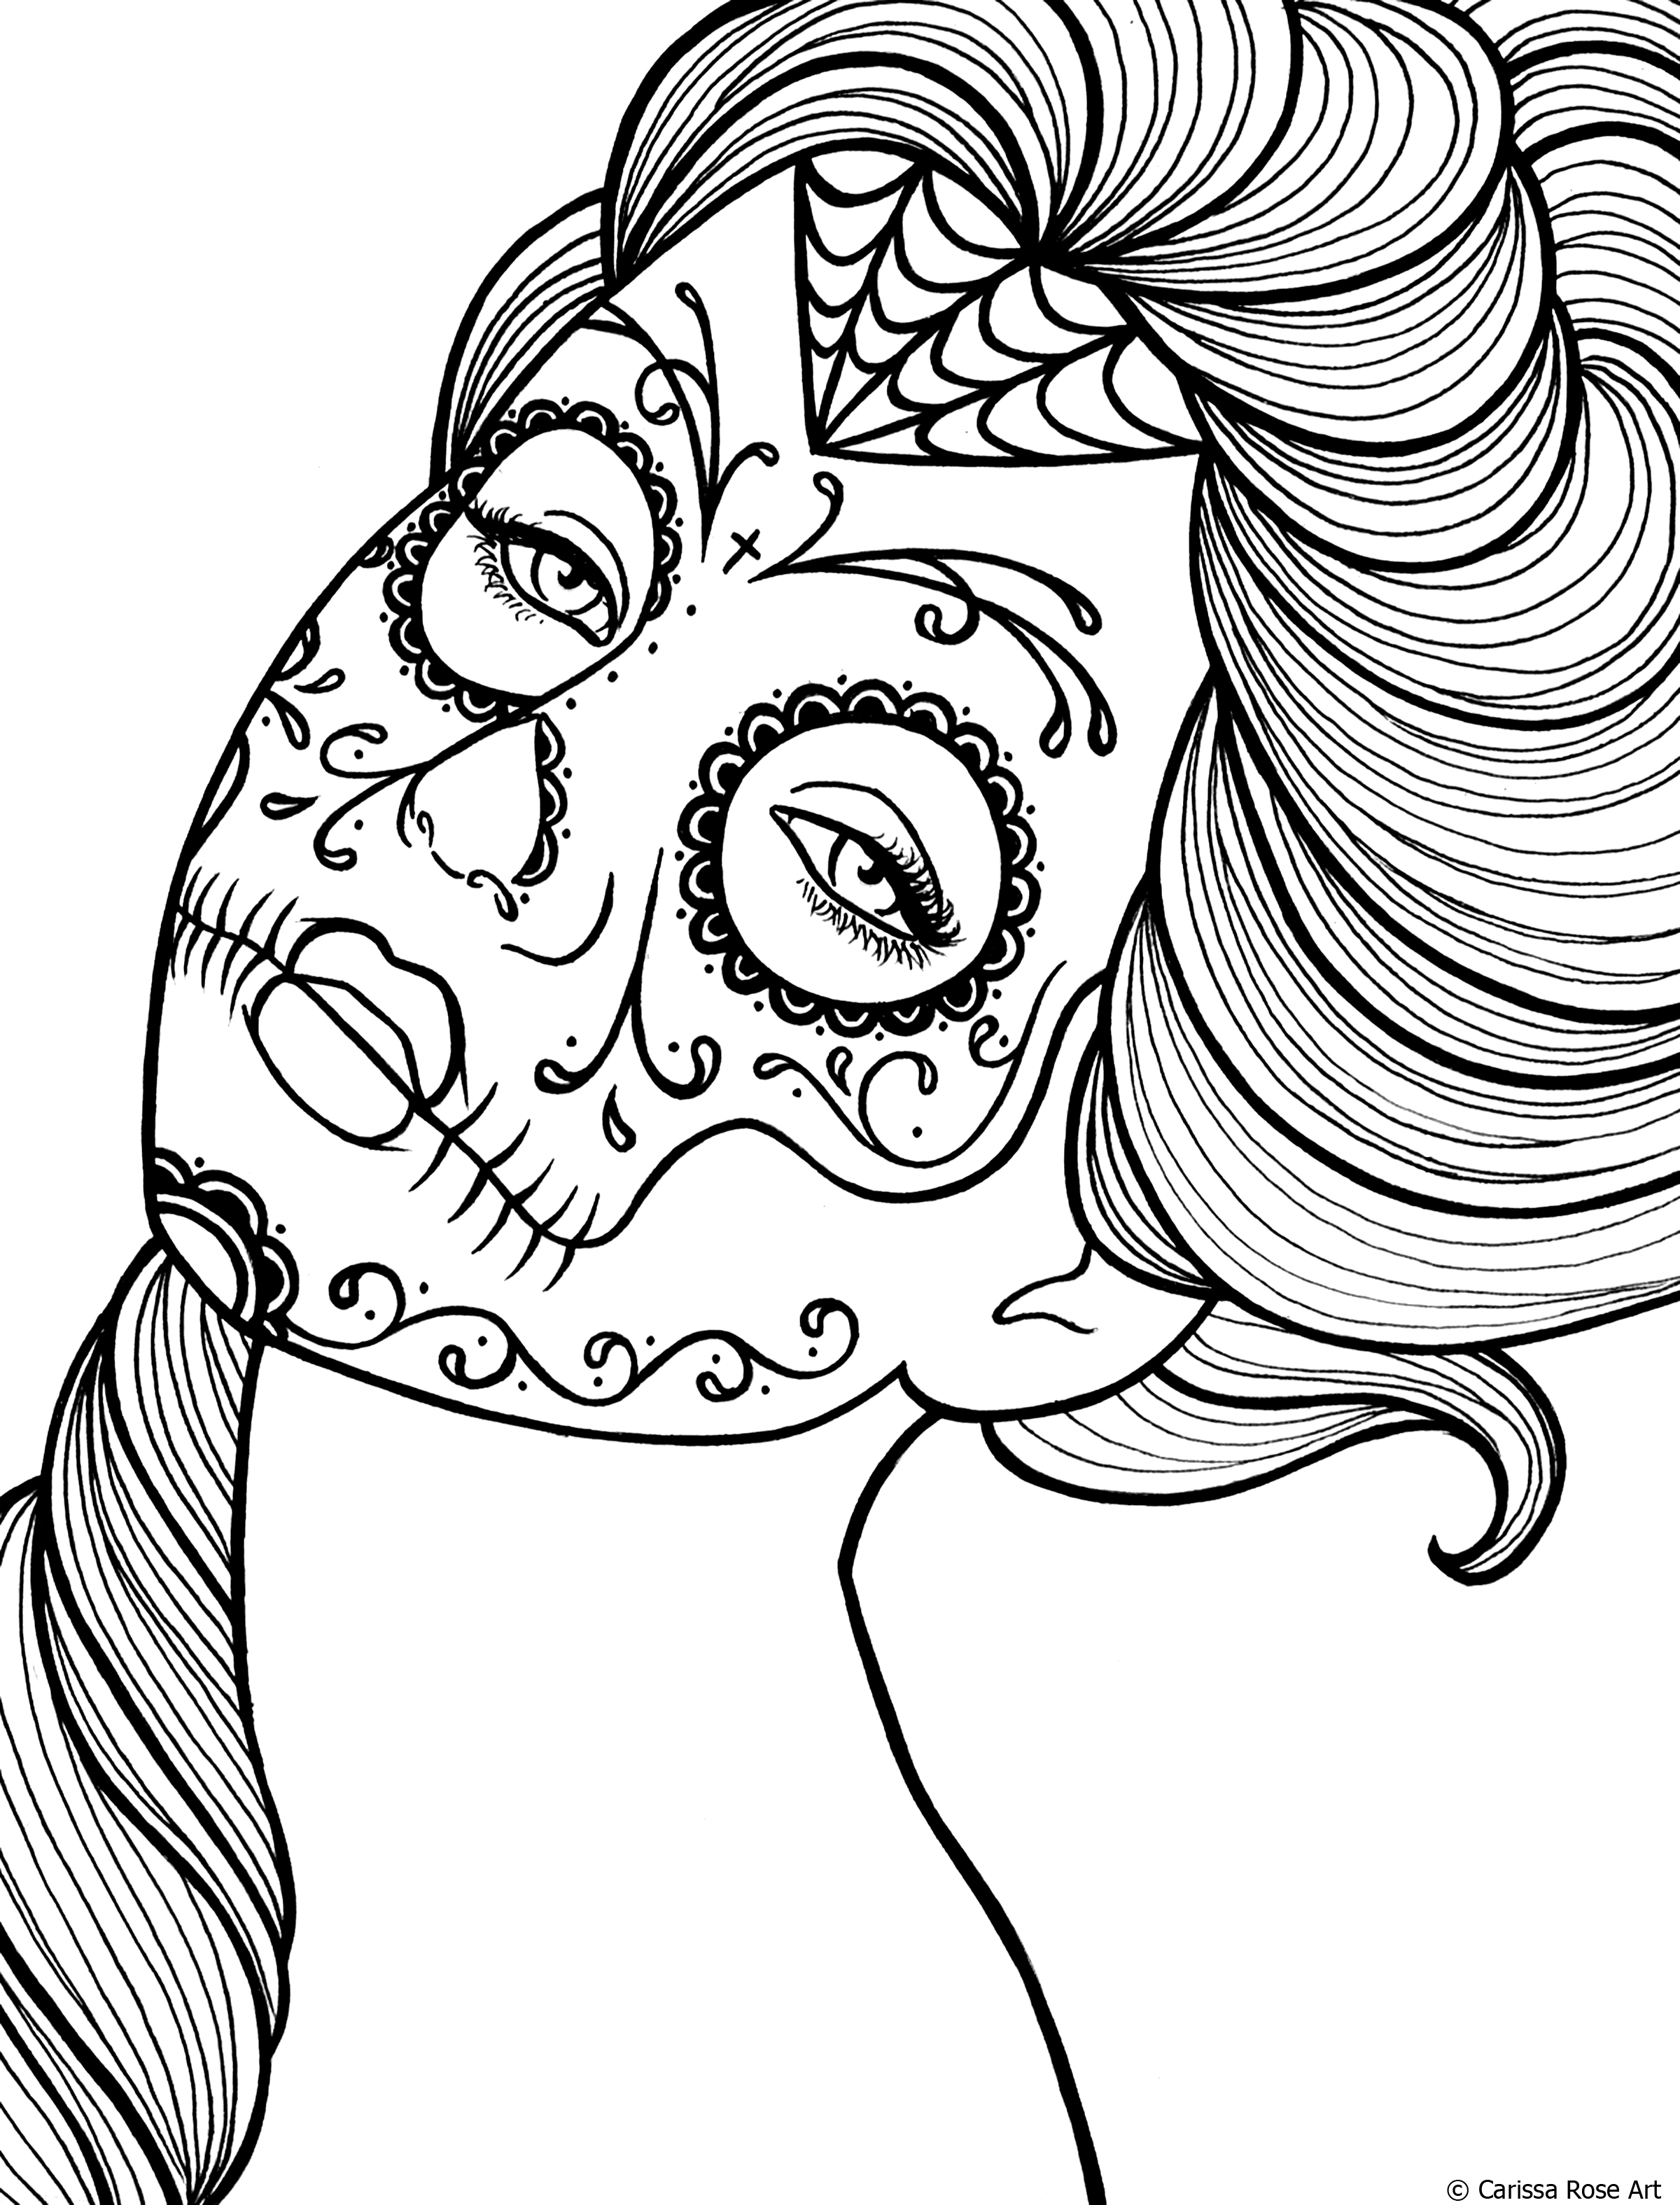 day of the dead printable coloring pages free printable day of the dead coloring pages best day dead printable of pages the coloring